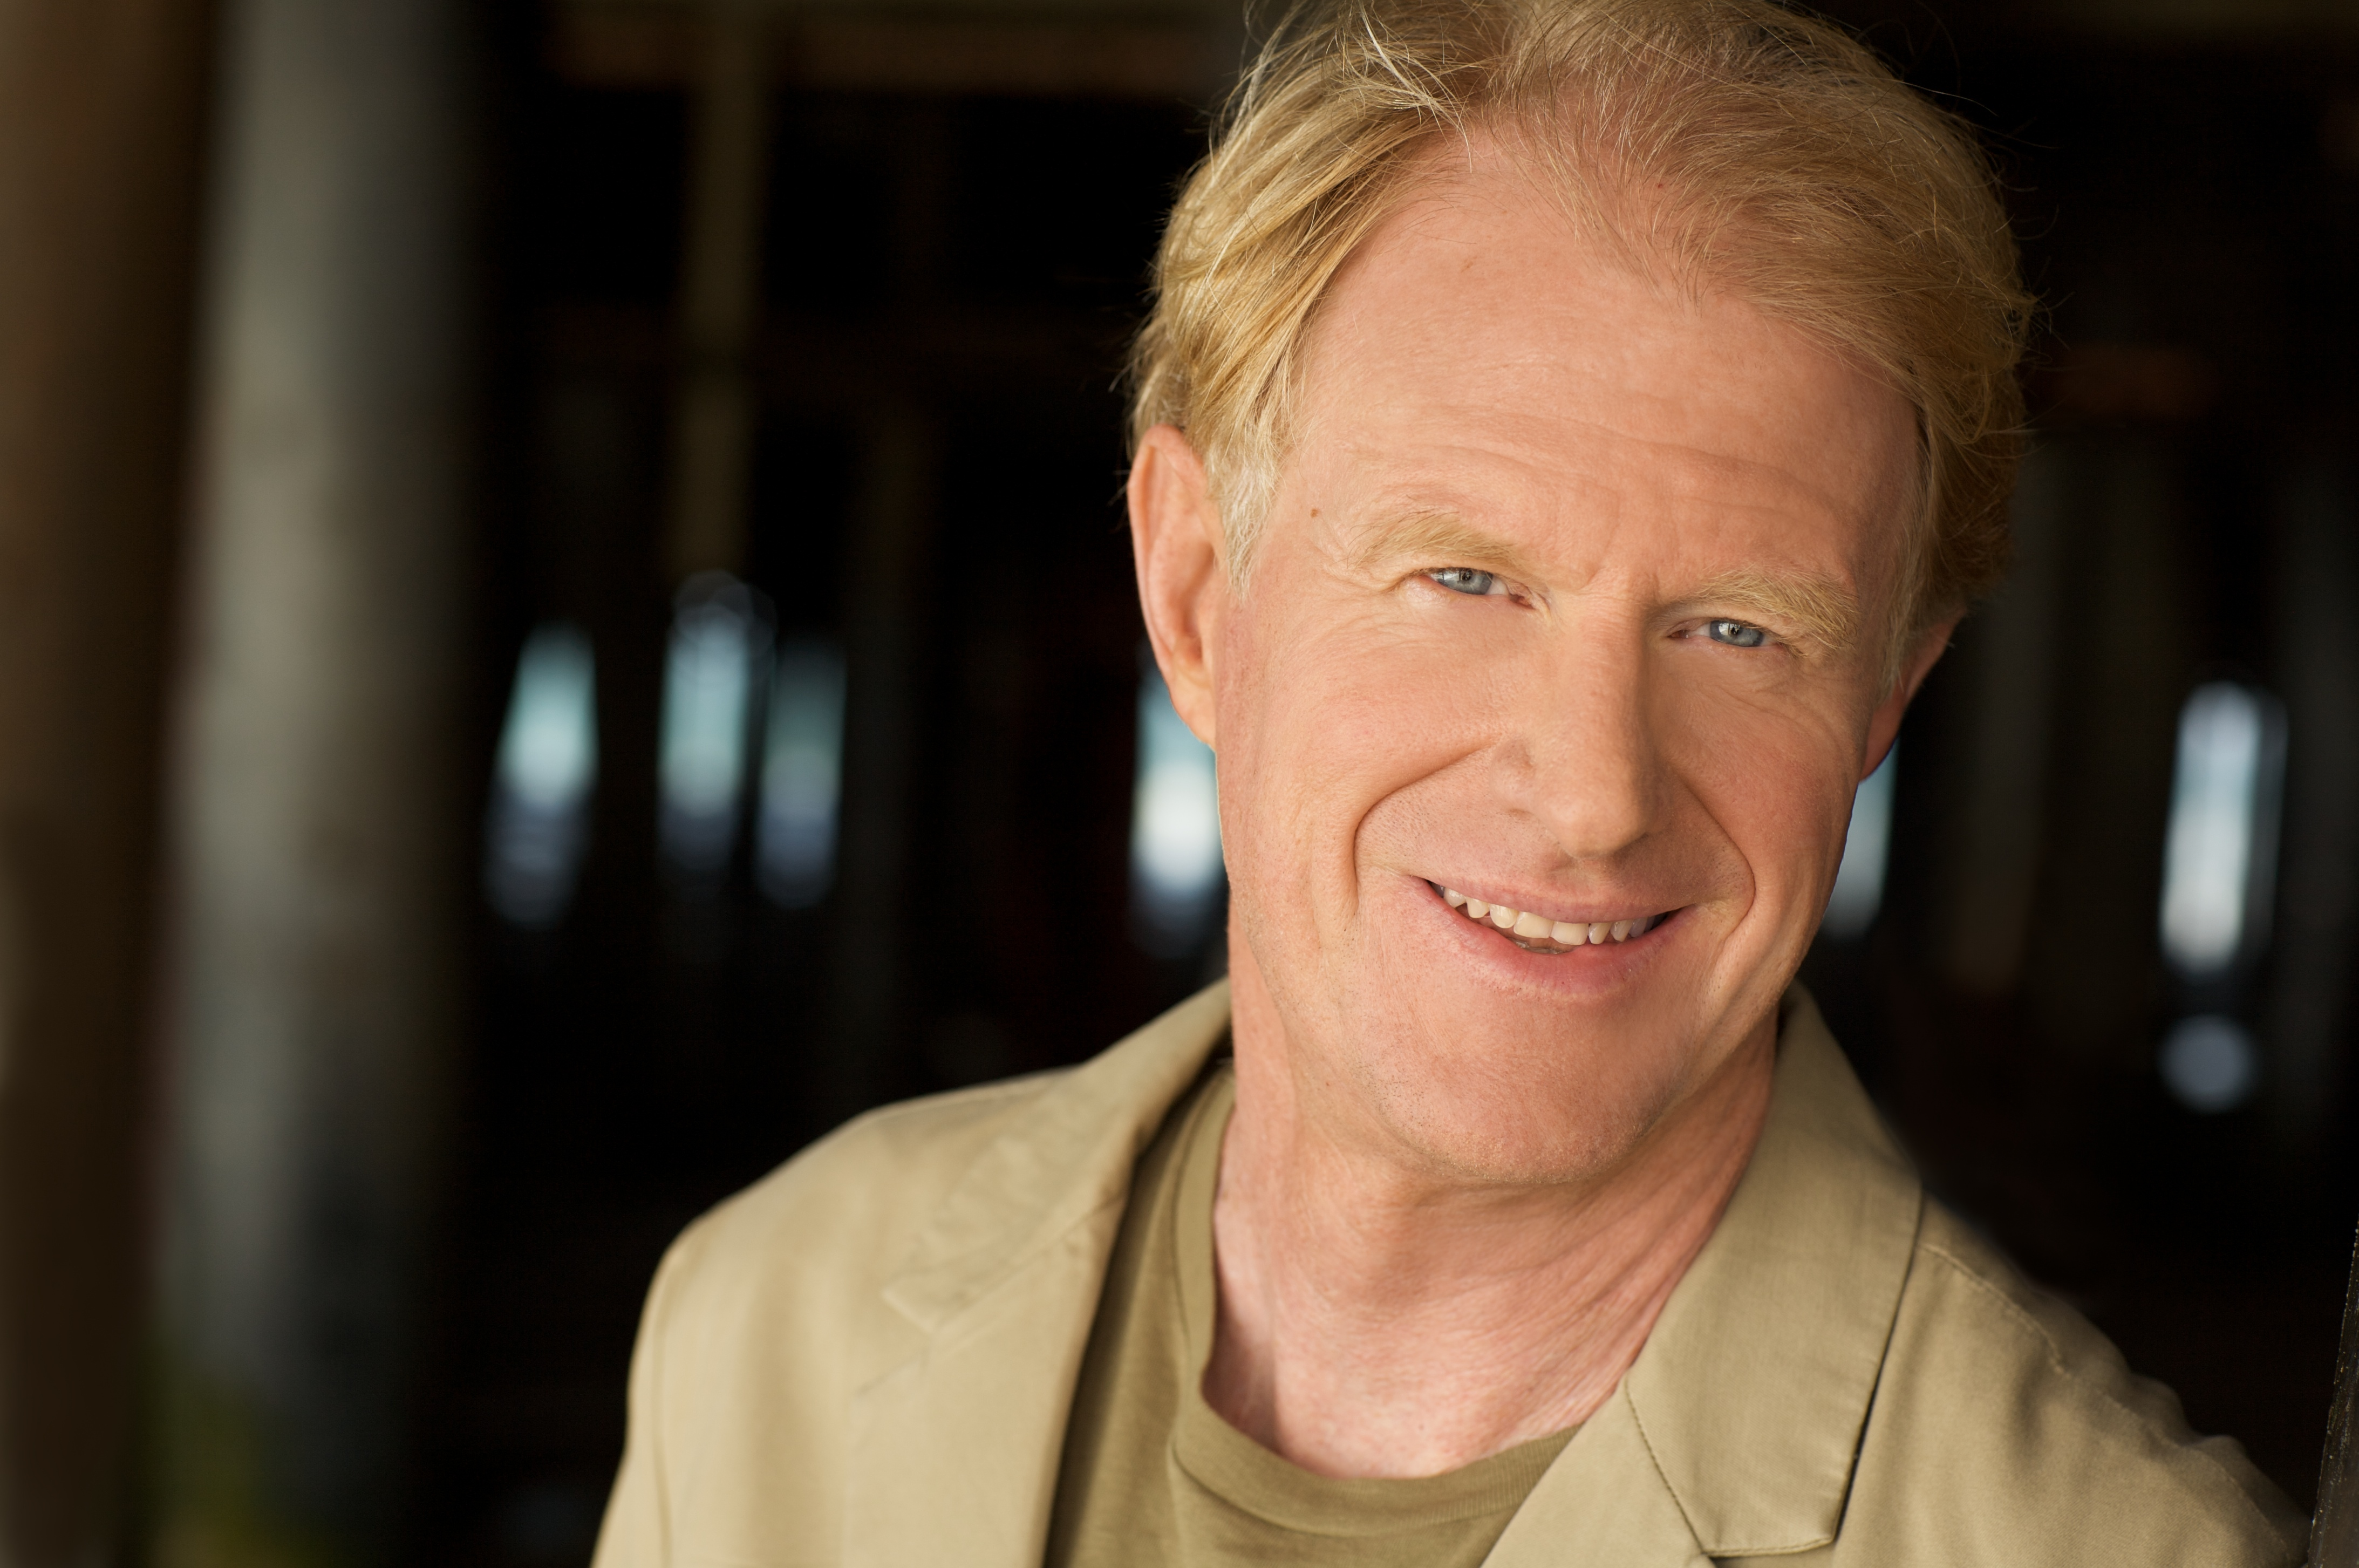 Eaton Teams With Actor Ed Begley Jr To Highlight Energy Saving Cooper Wiring Devices Inc Markhornereatoncom